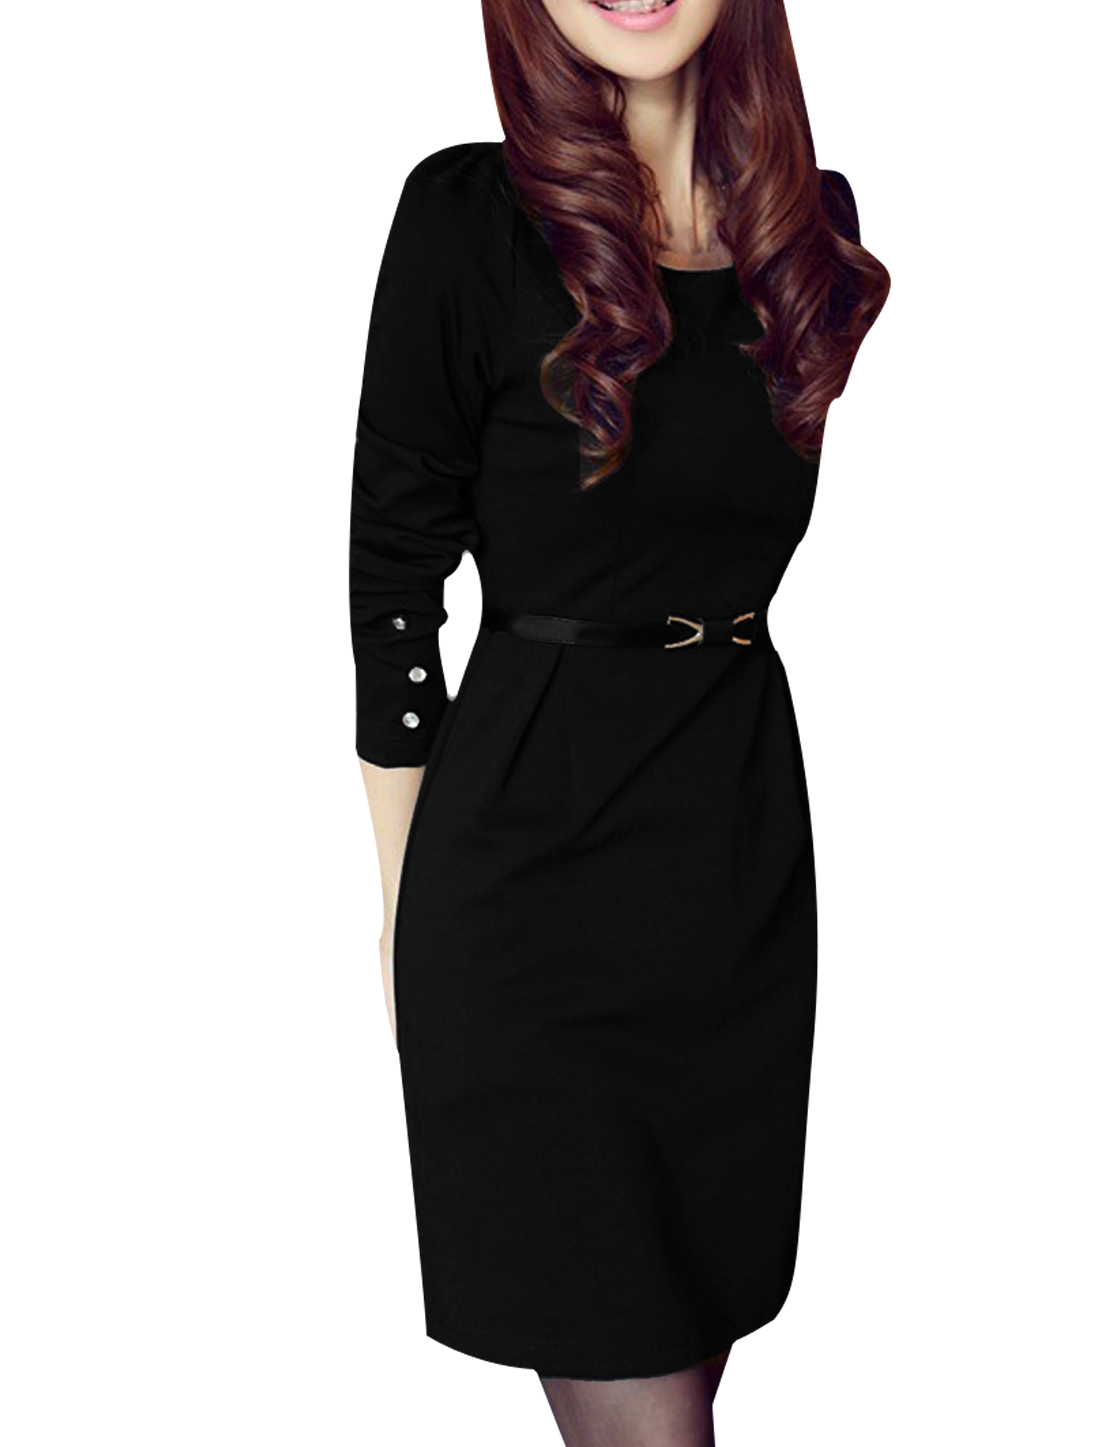 Ladies Black Long Sleeve A-line Dress W Removeable Bow Tie Belt S